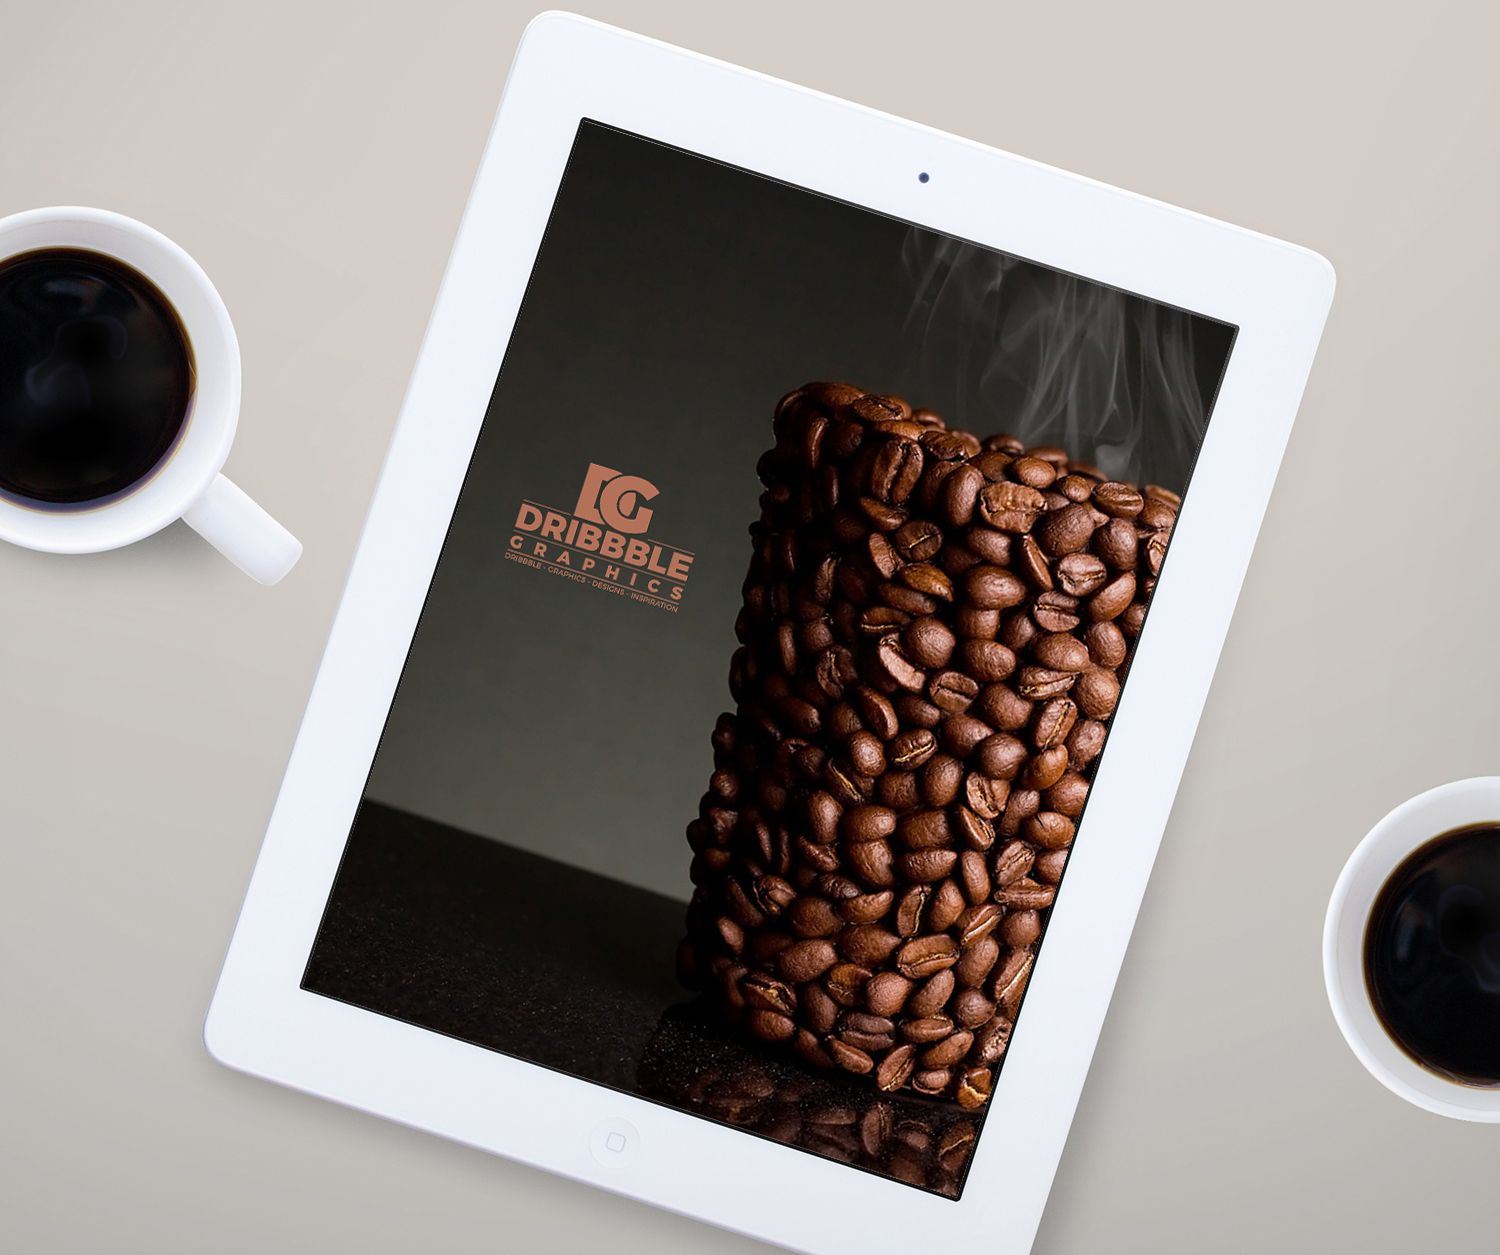 Free Ipad Mock Up With Coffee Cup Psd 7 35 Mb Dribbble Graphics Free Photoshop Mockup Psd Apple Ipad Coffee Ipad Mockup Free Ipad Mockup Templates